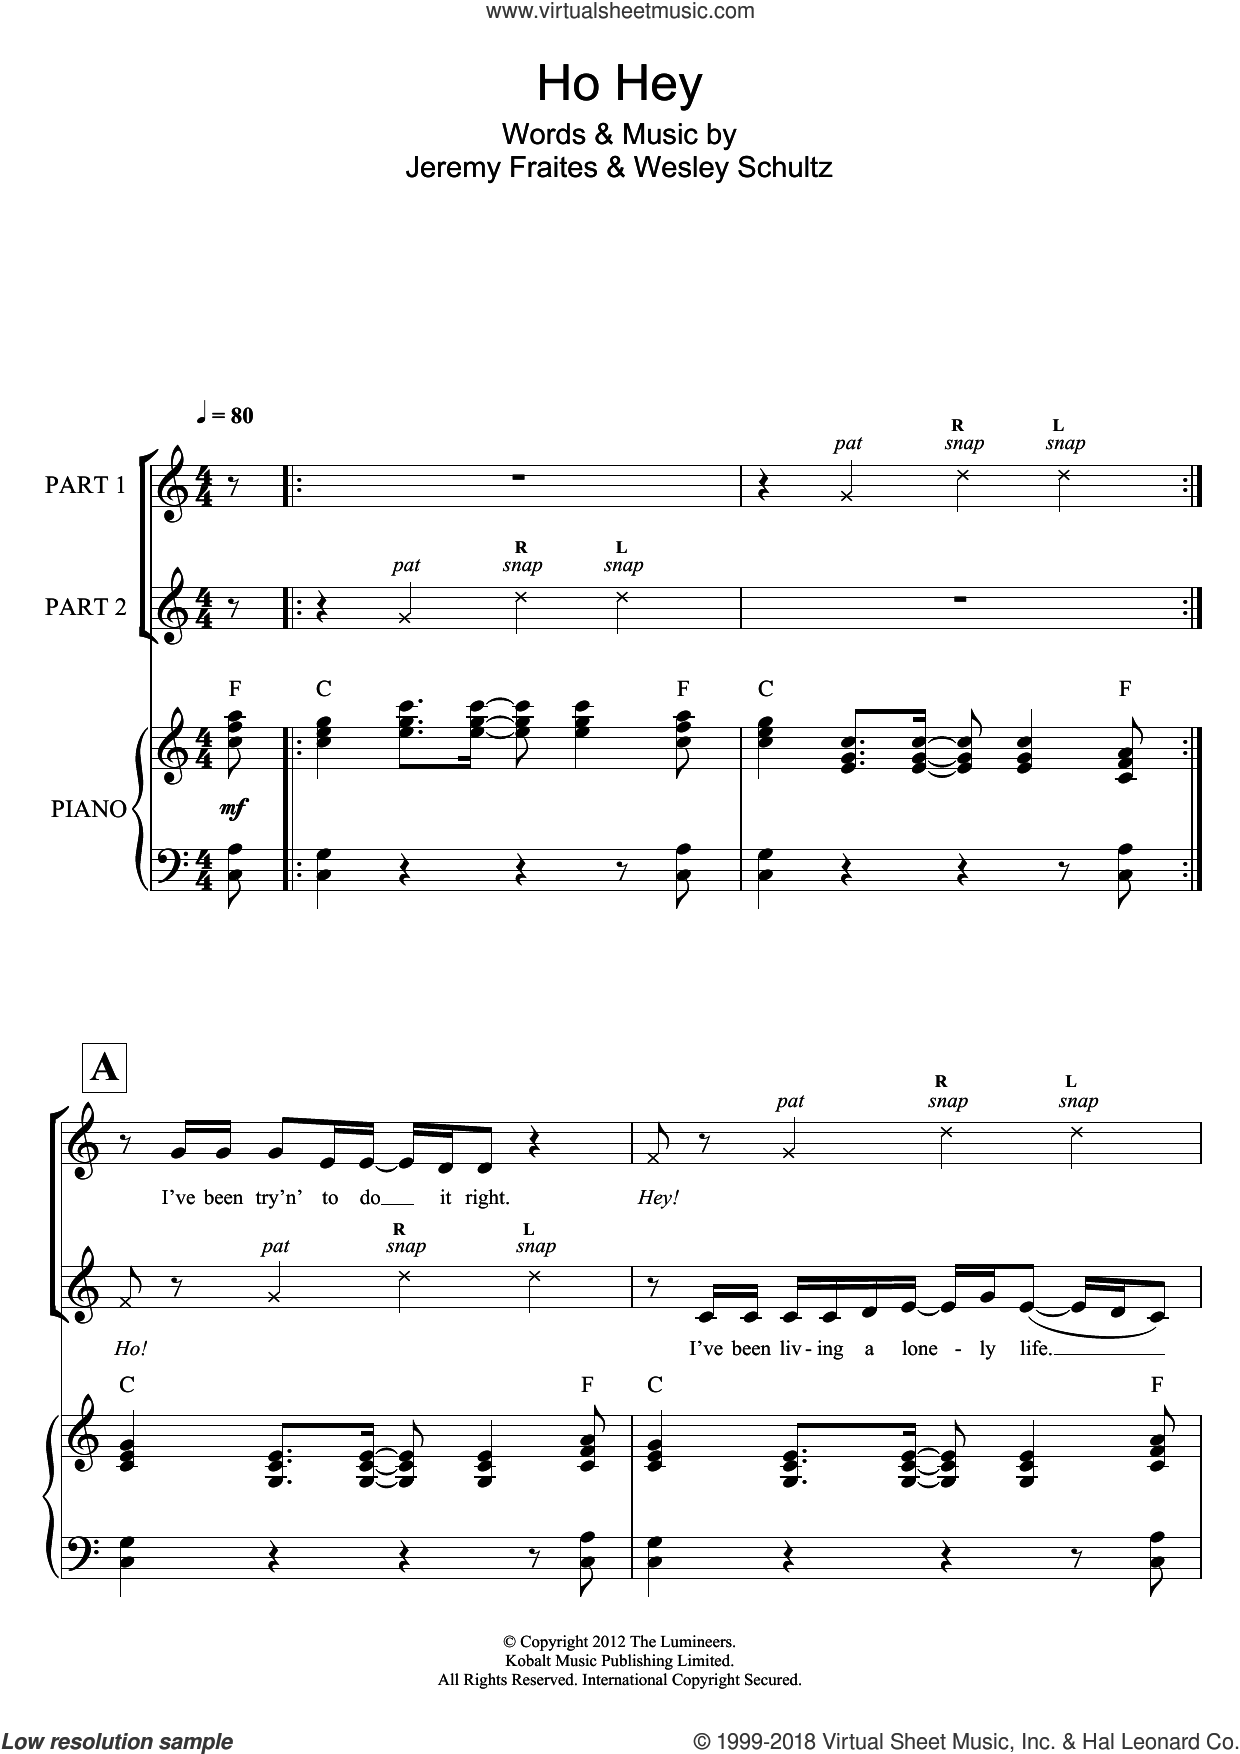 Ho Hey  (arr. Rick Hein) sheet music for choir by The Lumineers, Rick Hein, Jeremy Fraites and Wesley Schultz, intermediate skill level